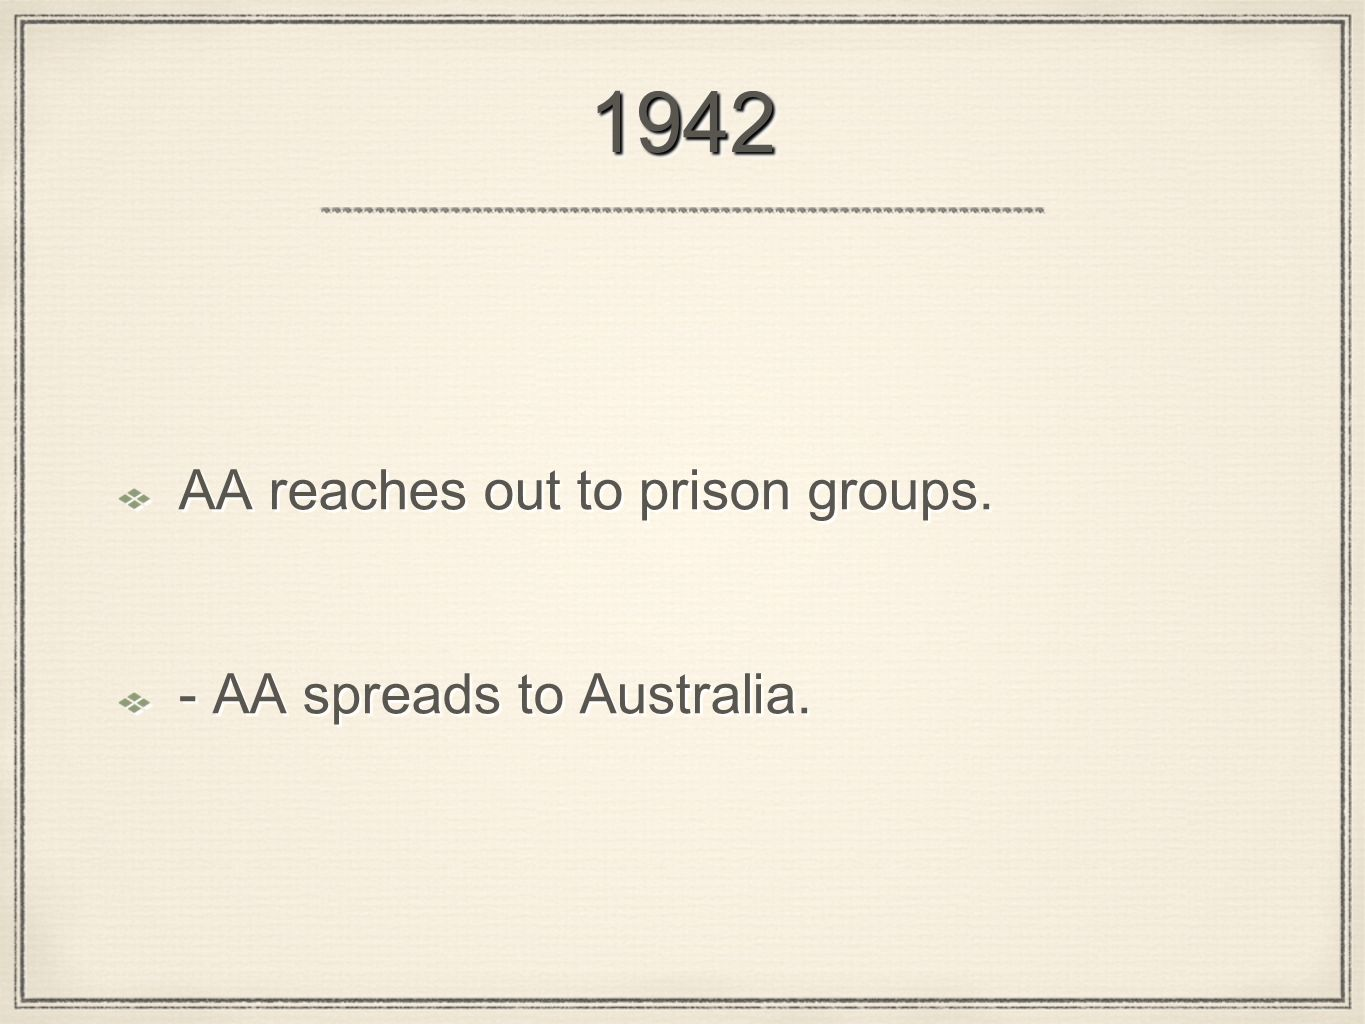 19421942 AA reaches out to prison groups. - AA spreads to Australia. AA reaches out to prison groups. - AA spreads to Australia.